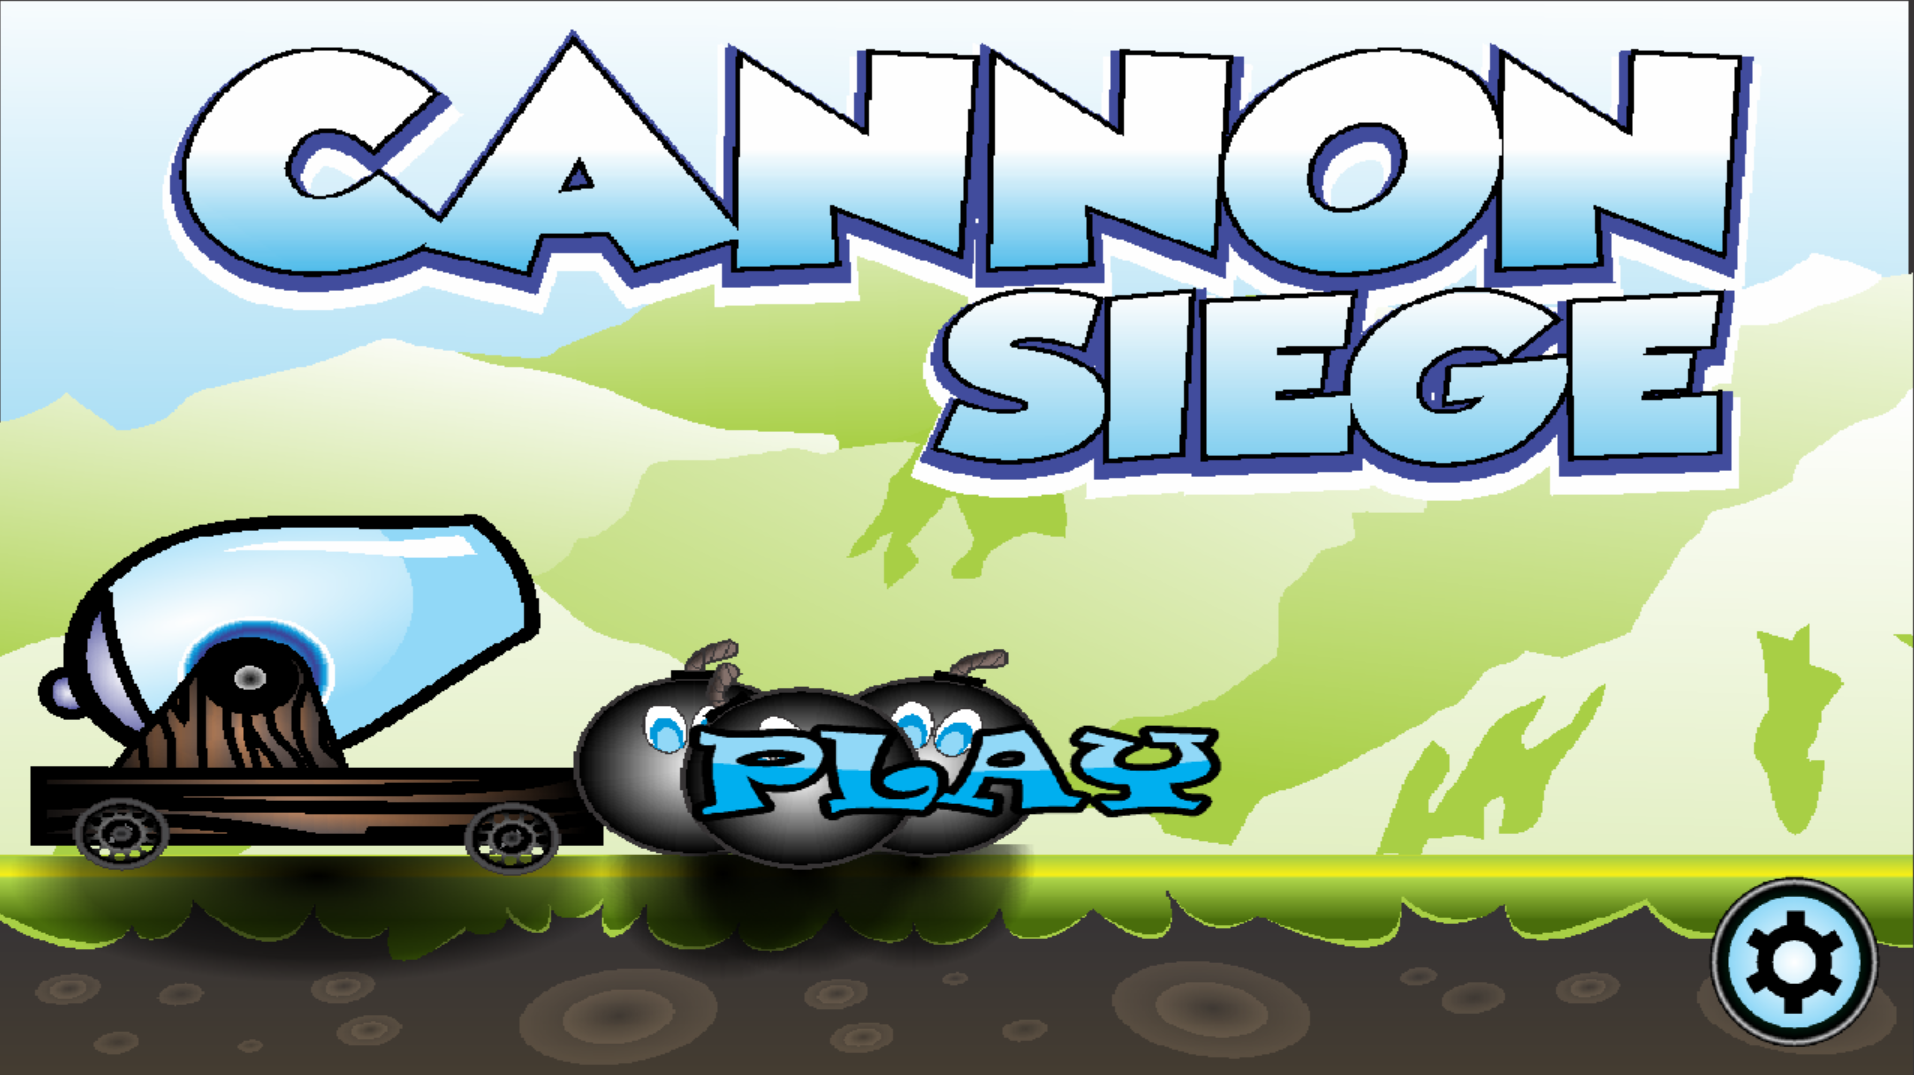 Cannon siege tutorial a classic arcade game for androidios in this tutorial we will create a simple game called cannon siege using a unity game engine and a c script unity is a cross platform game engine baditri Choice Image